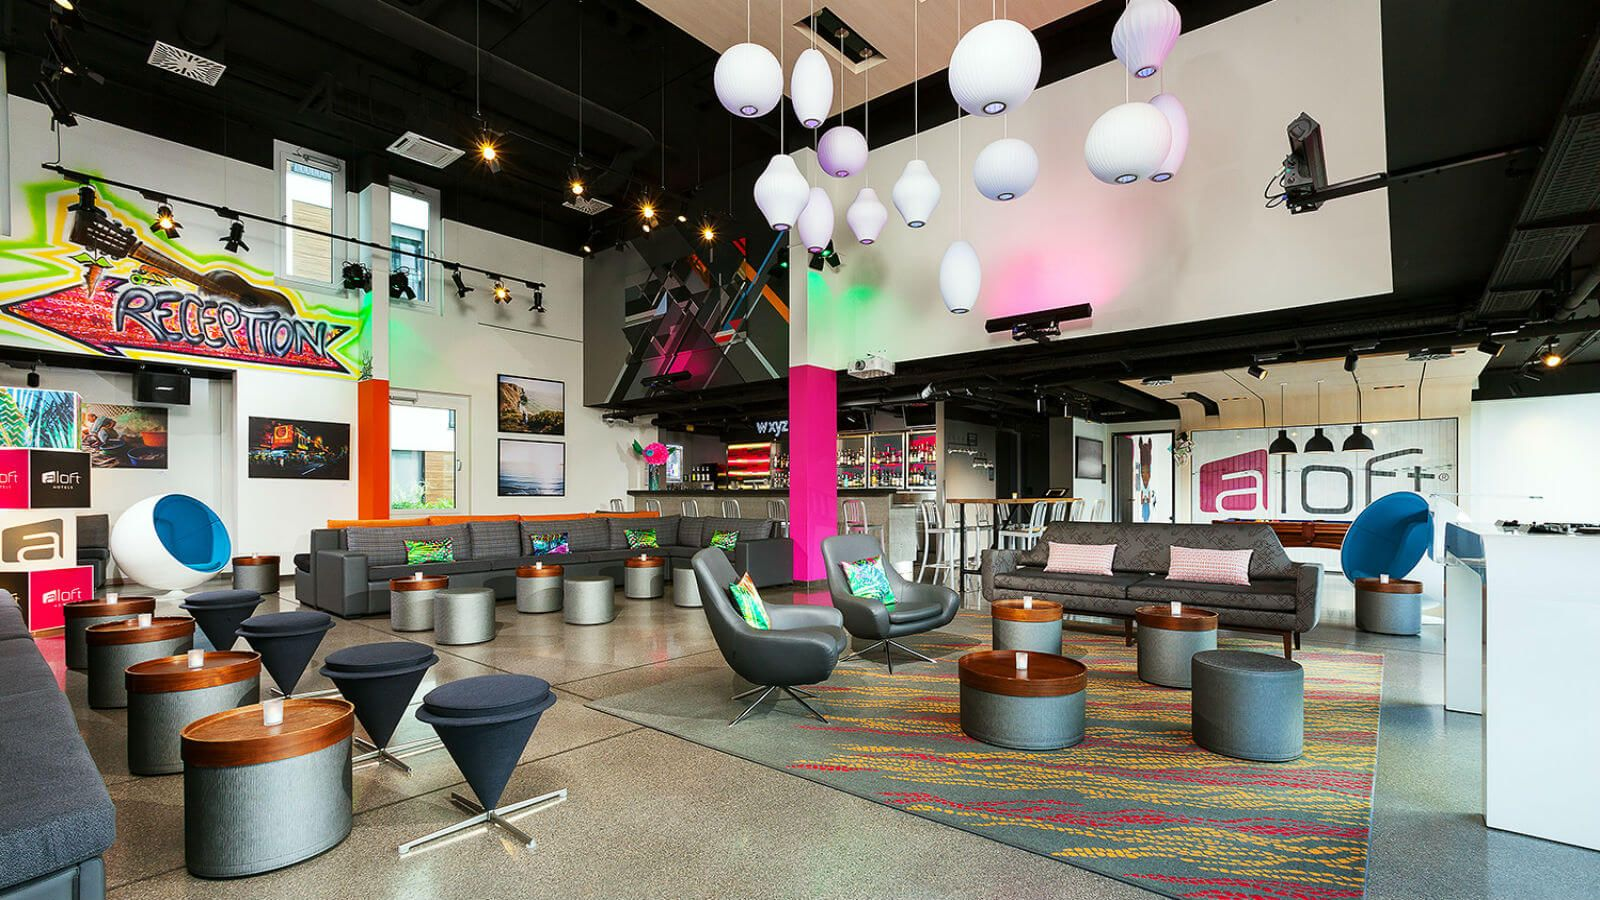 Aloft Hotel Stuttgart Meetings & More